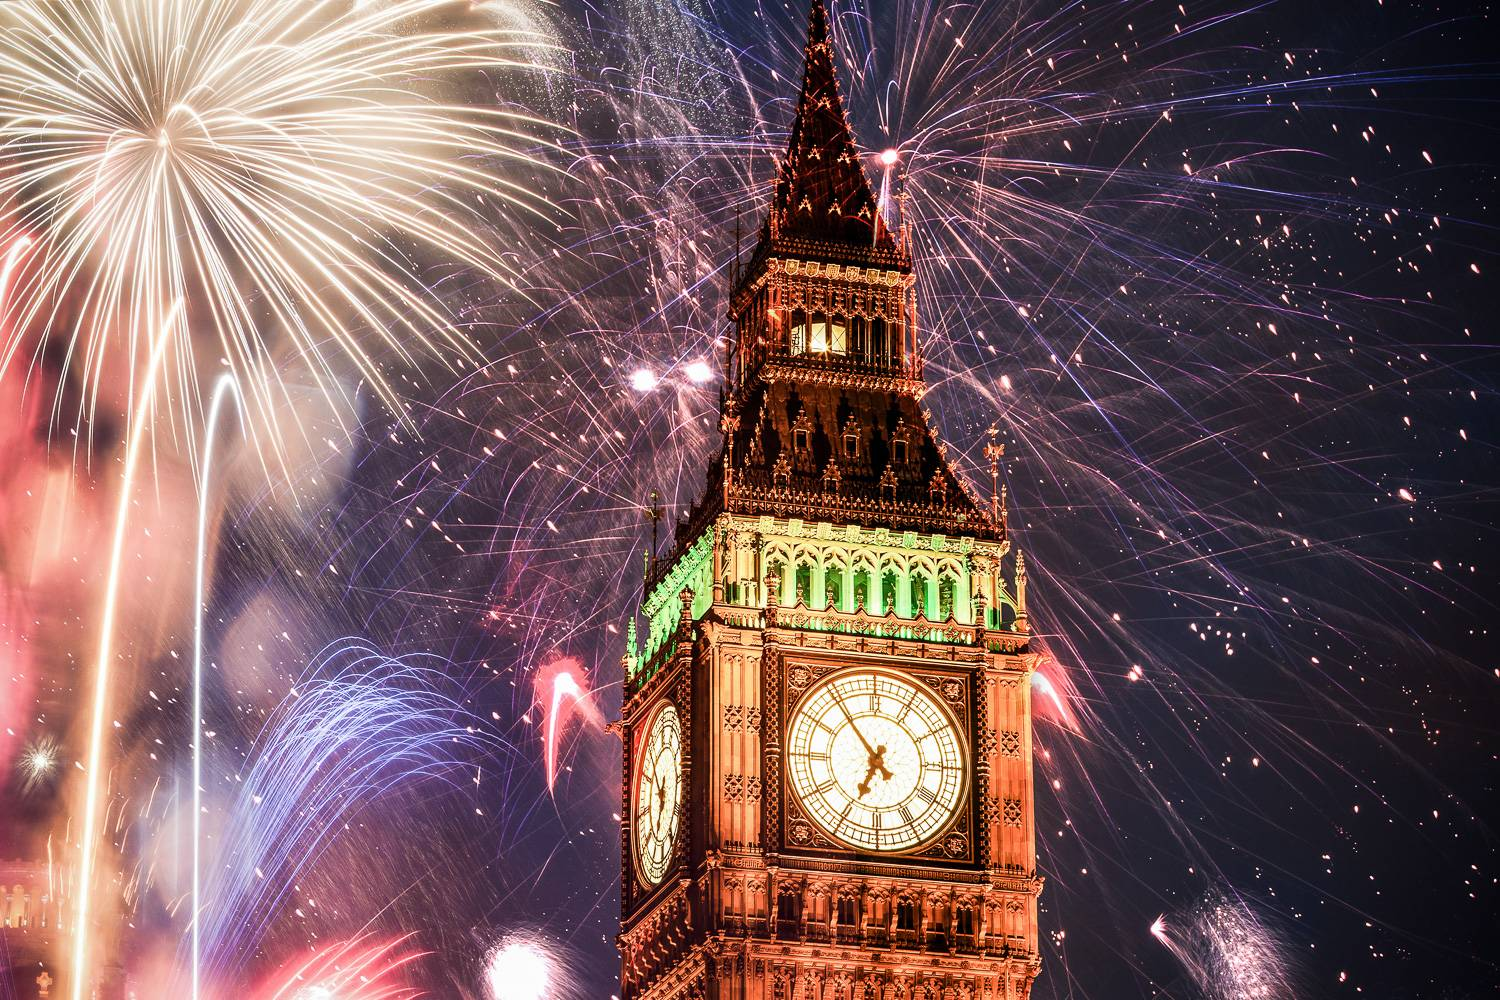 Image of Big Ben with fireworks in the background.